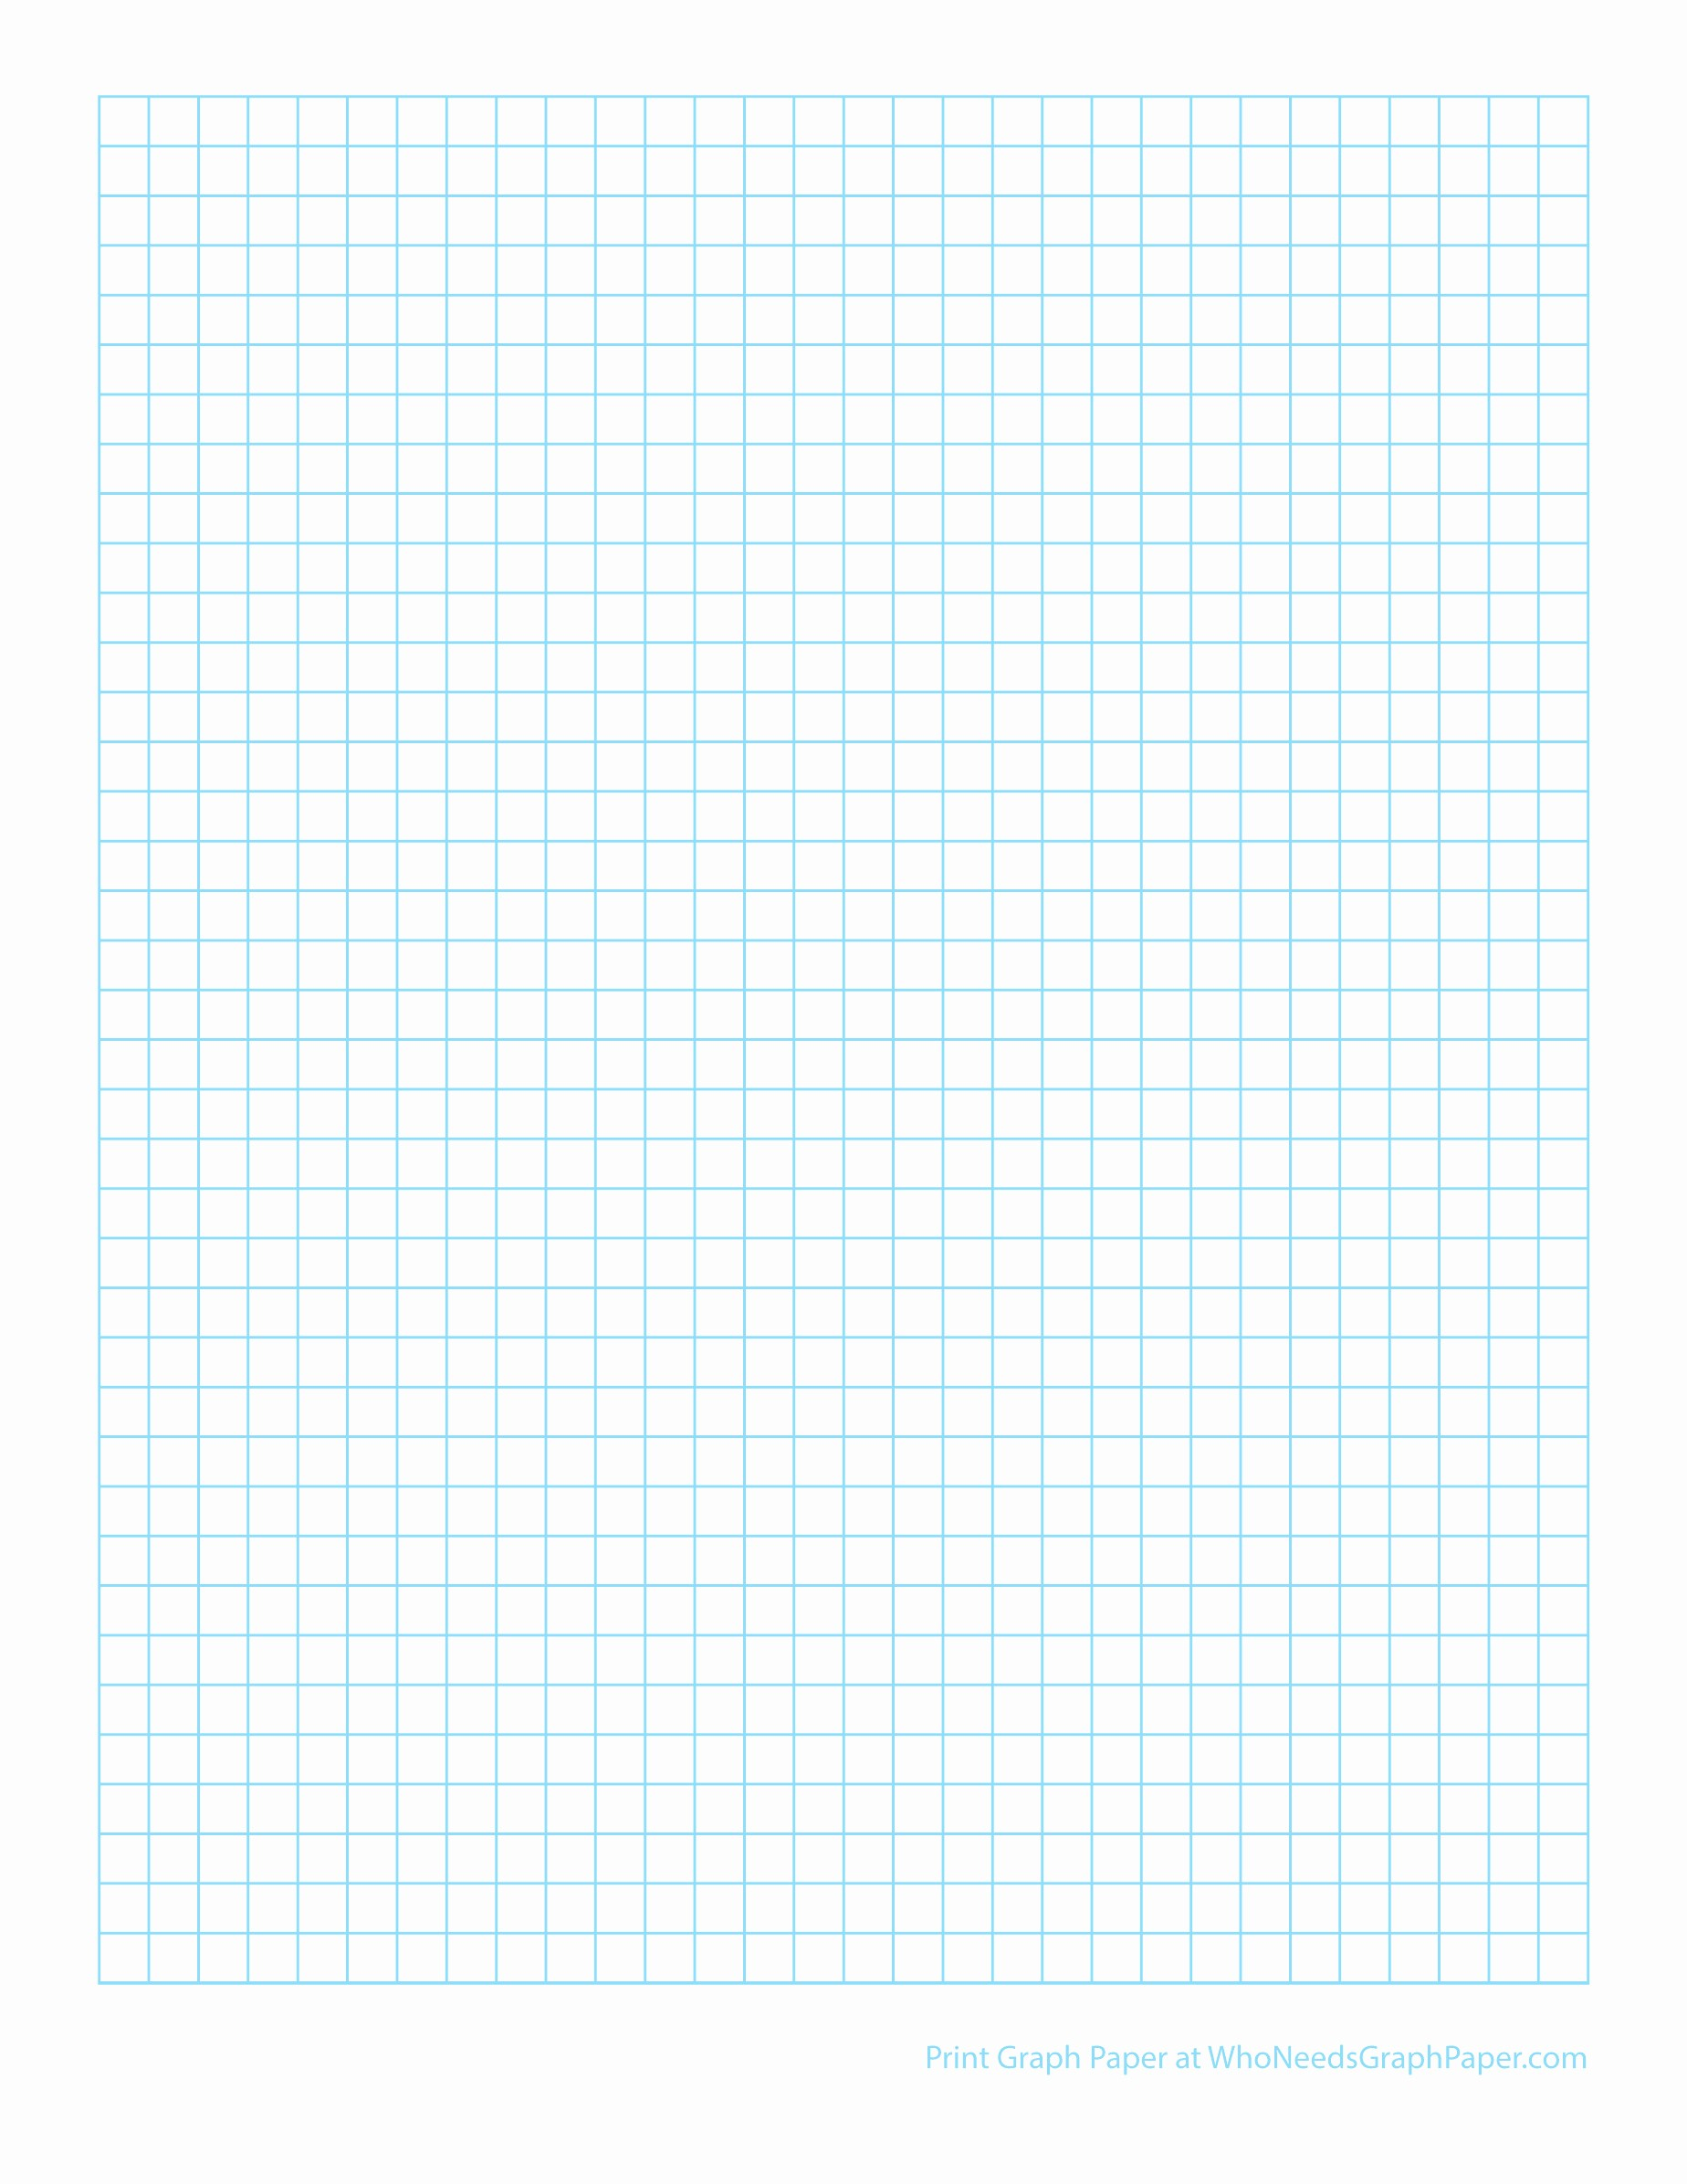 Graph Paper to Print Out Beautiful Worksheet Print Out Graph Paper Grass Fedjp Worksheet